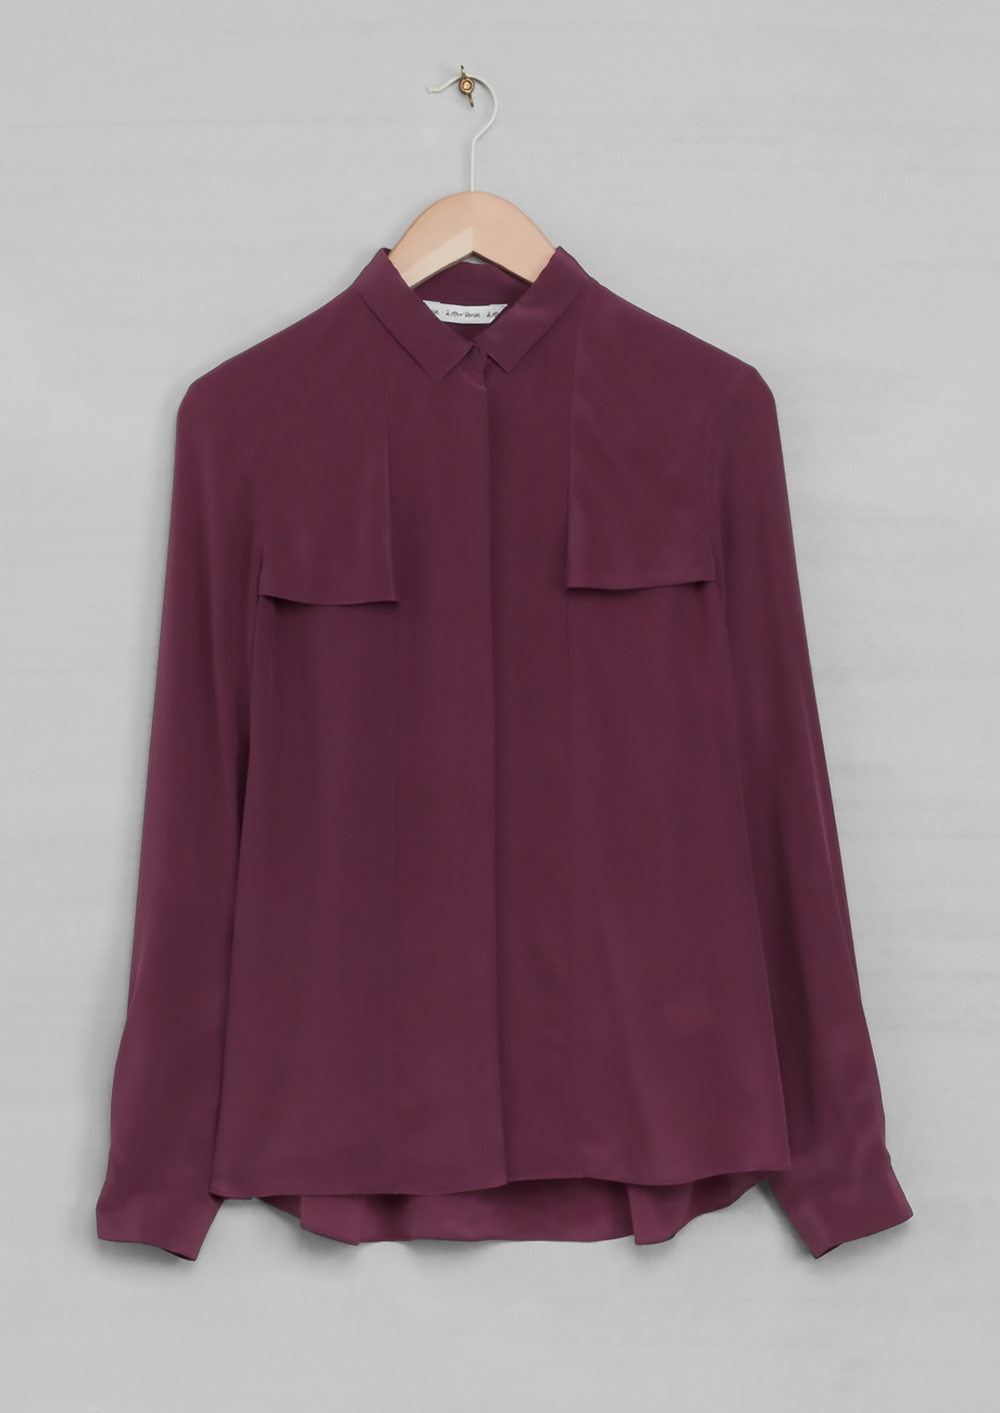 &otherstories mulberry silk blouse 1500.jpg